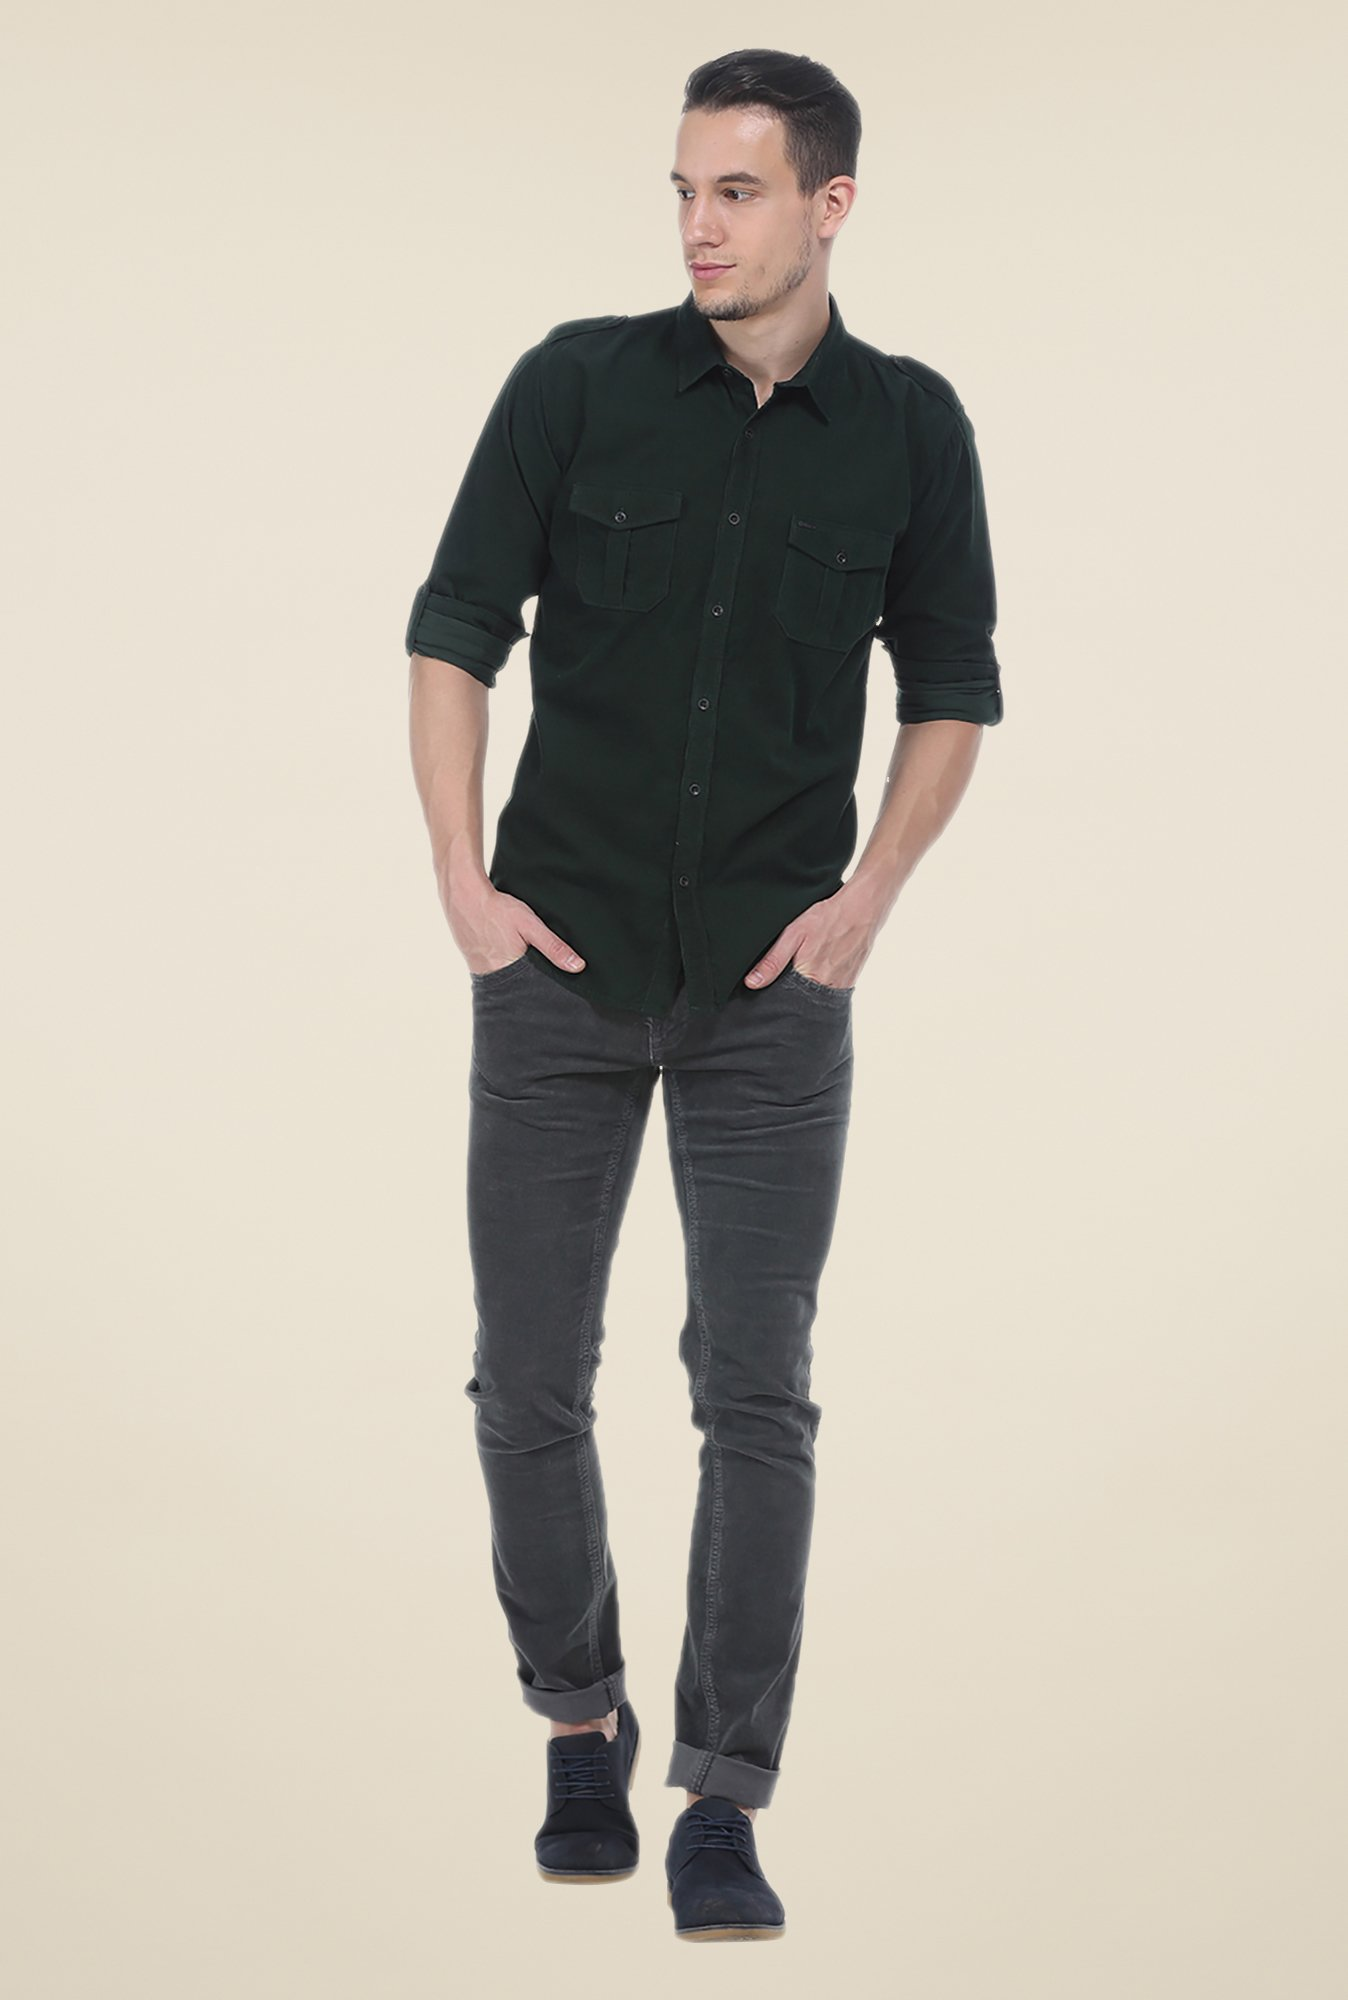 Basics Green Solid Slim Fit Cotton Shirt